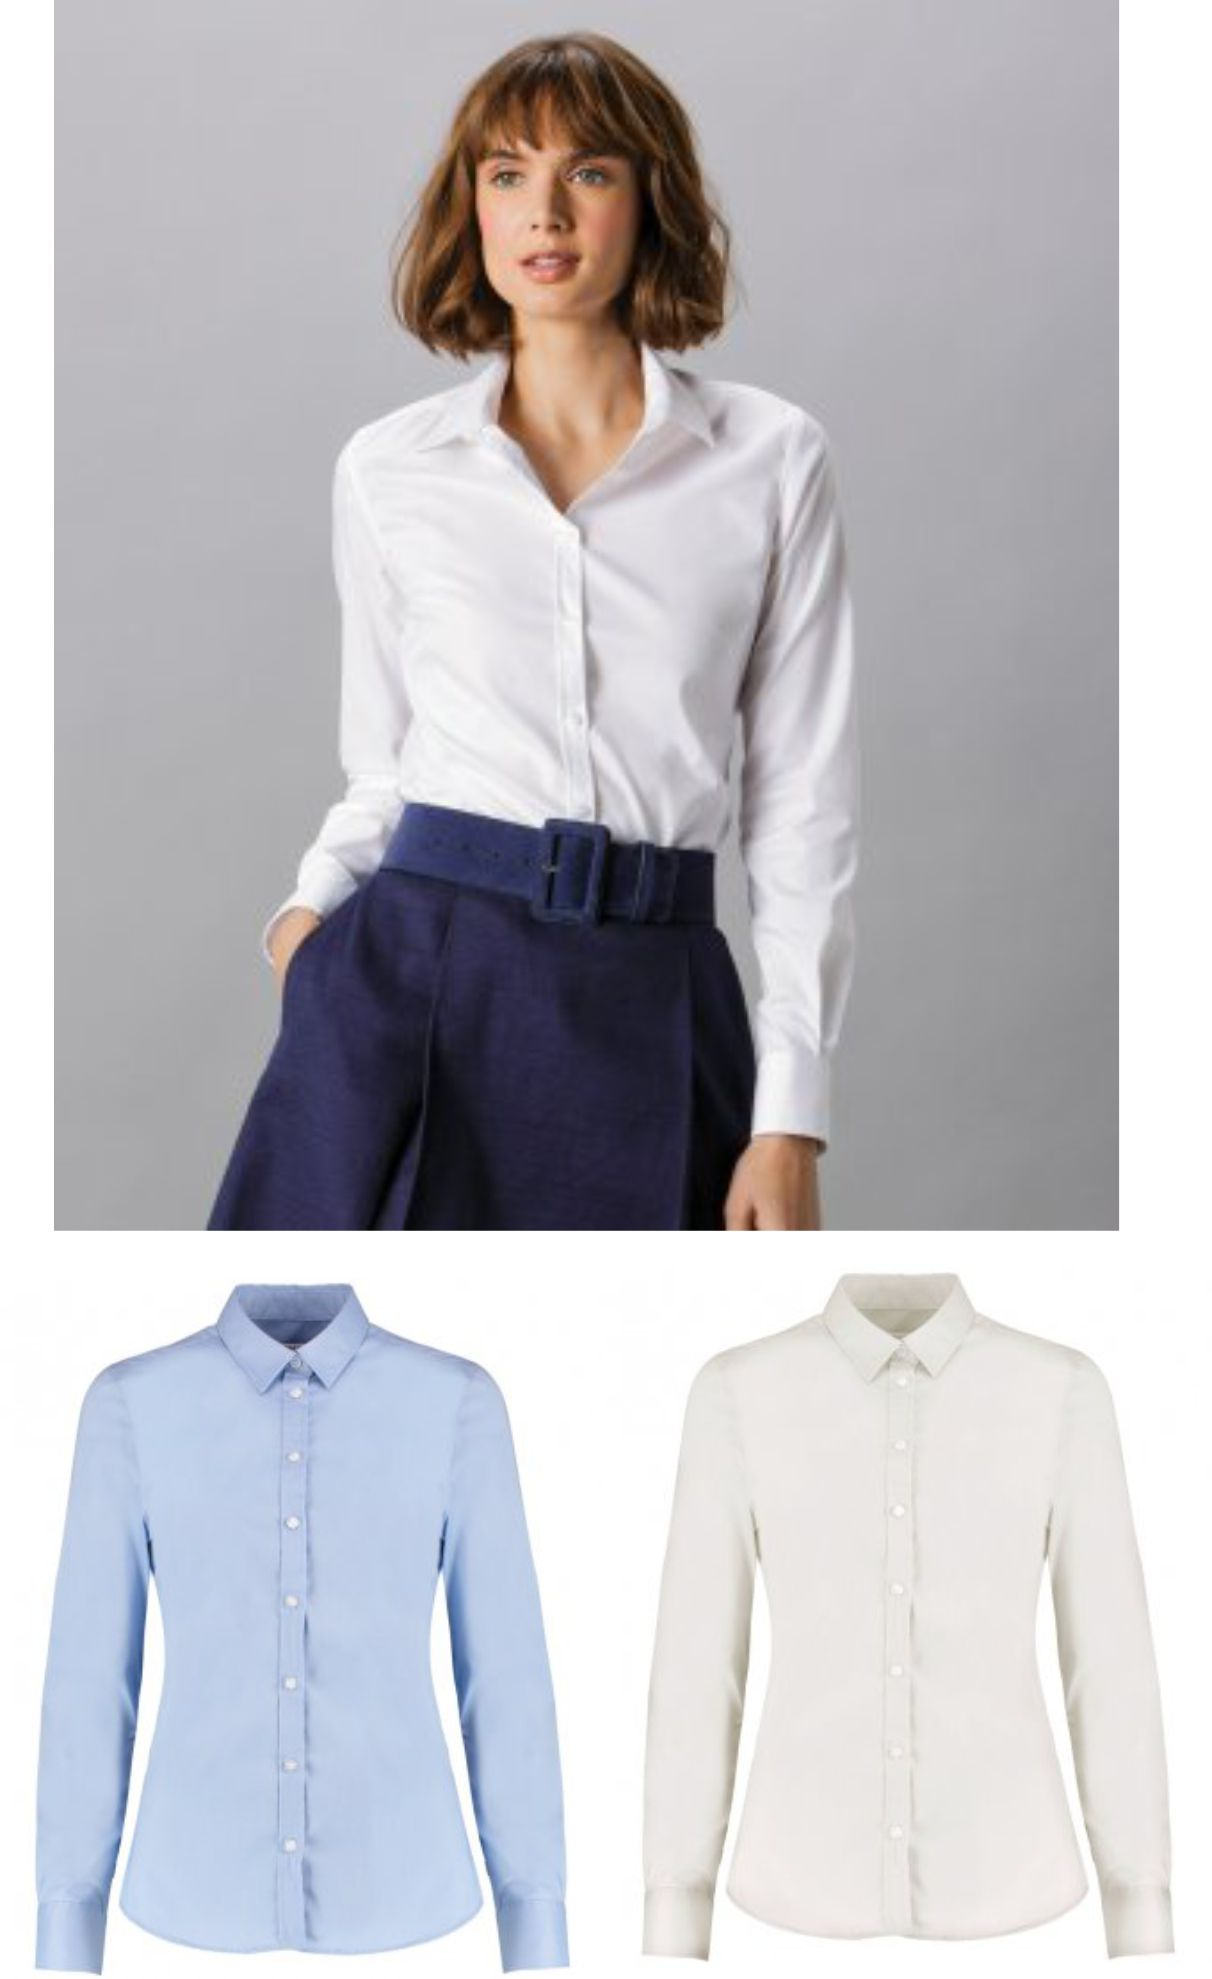 Kustom K782 Ladies Long Sleeve Tailored Stretch Oxford Shirt